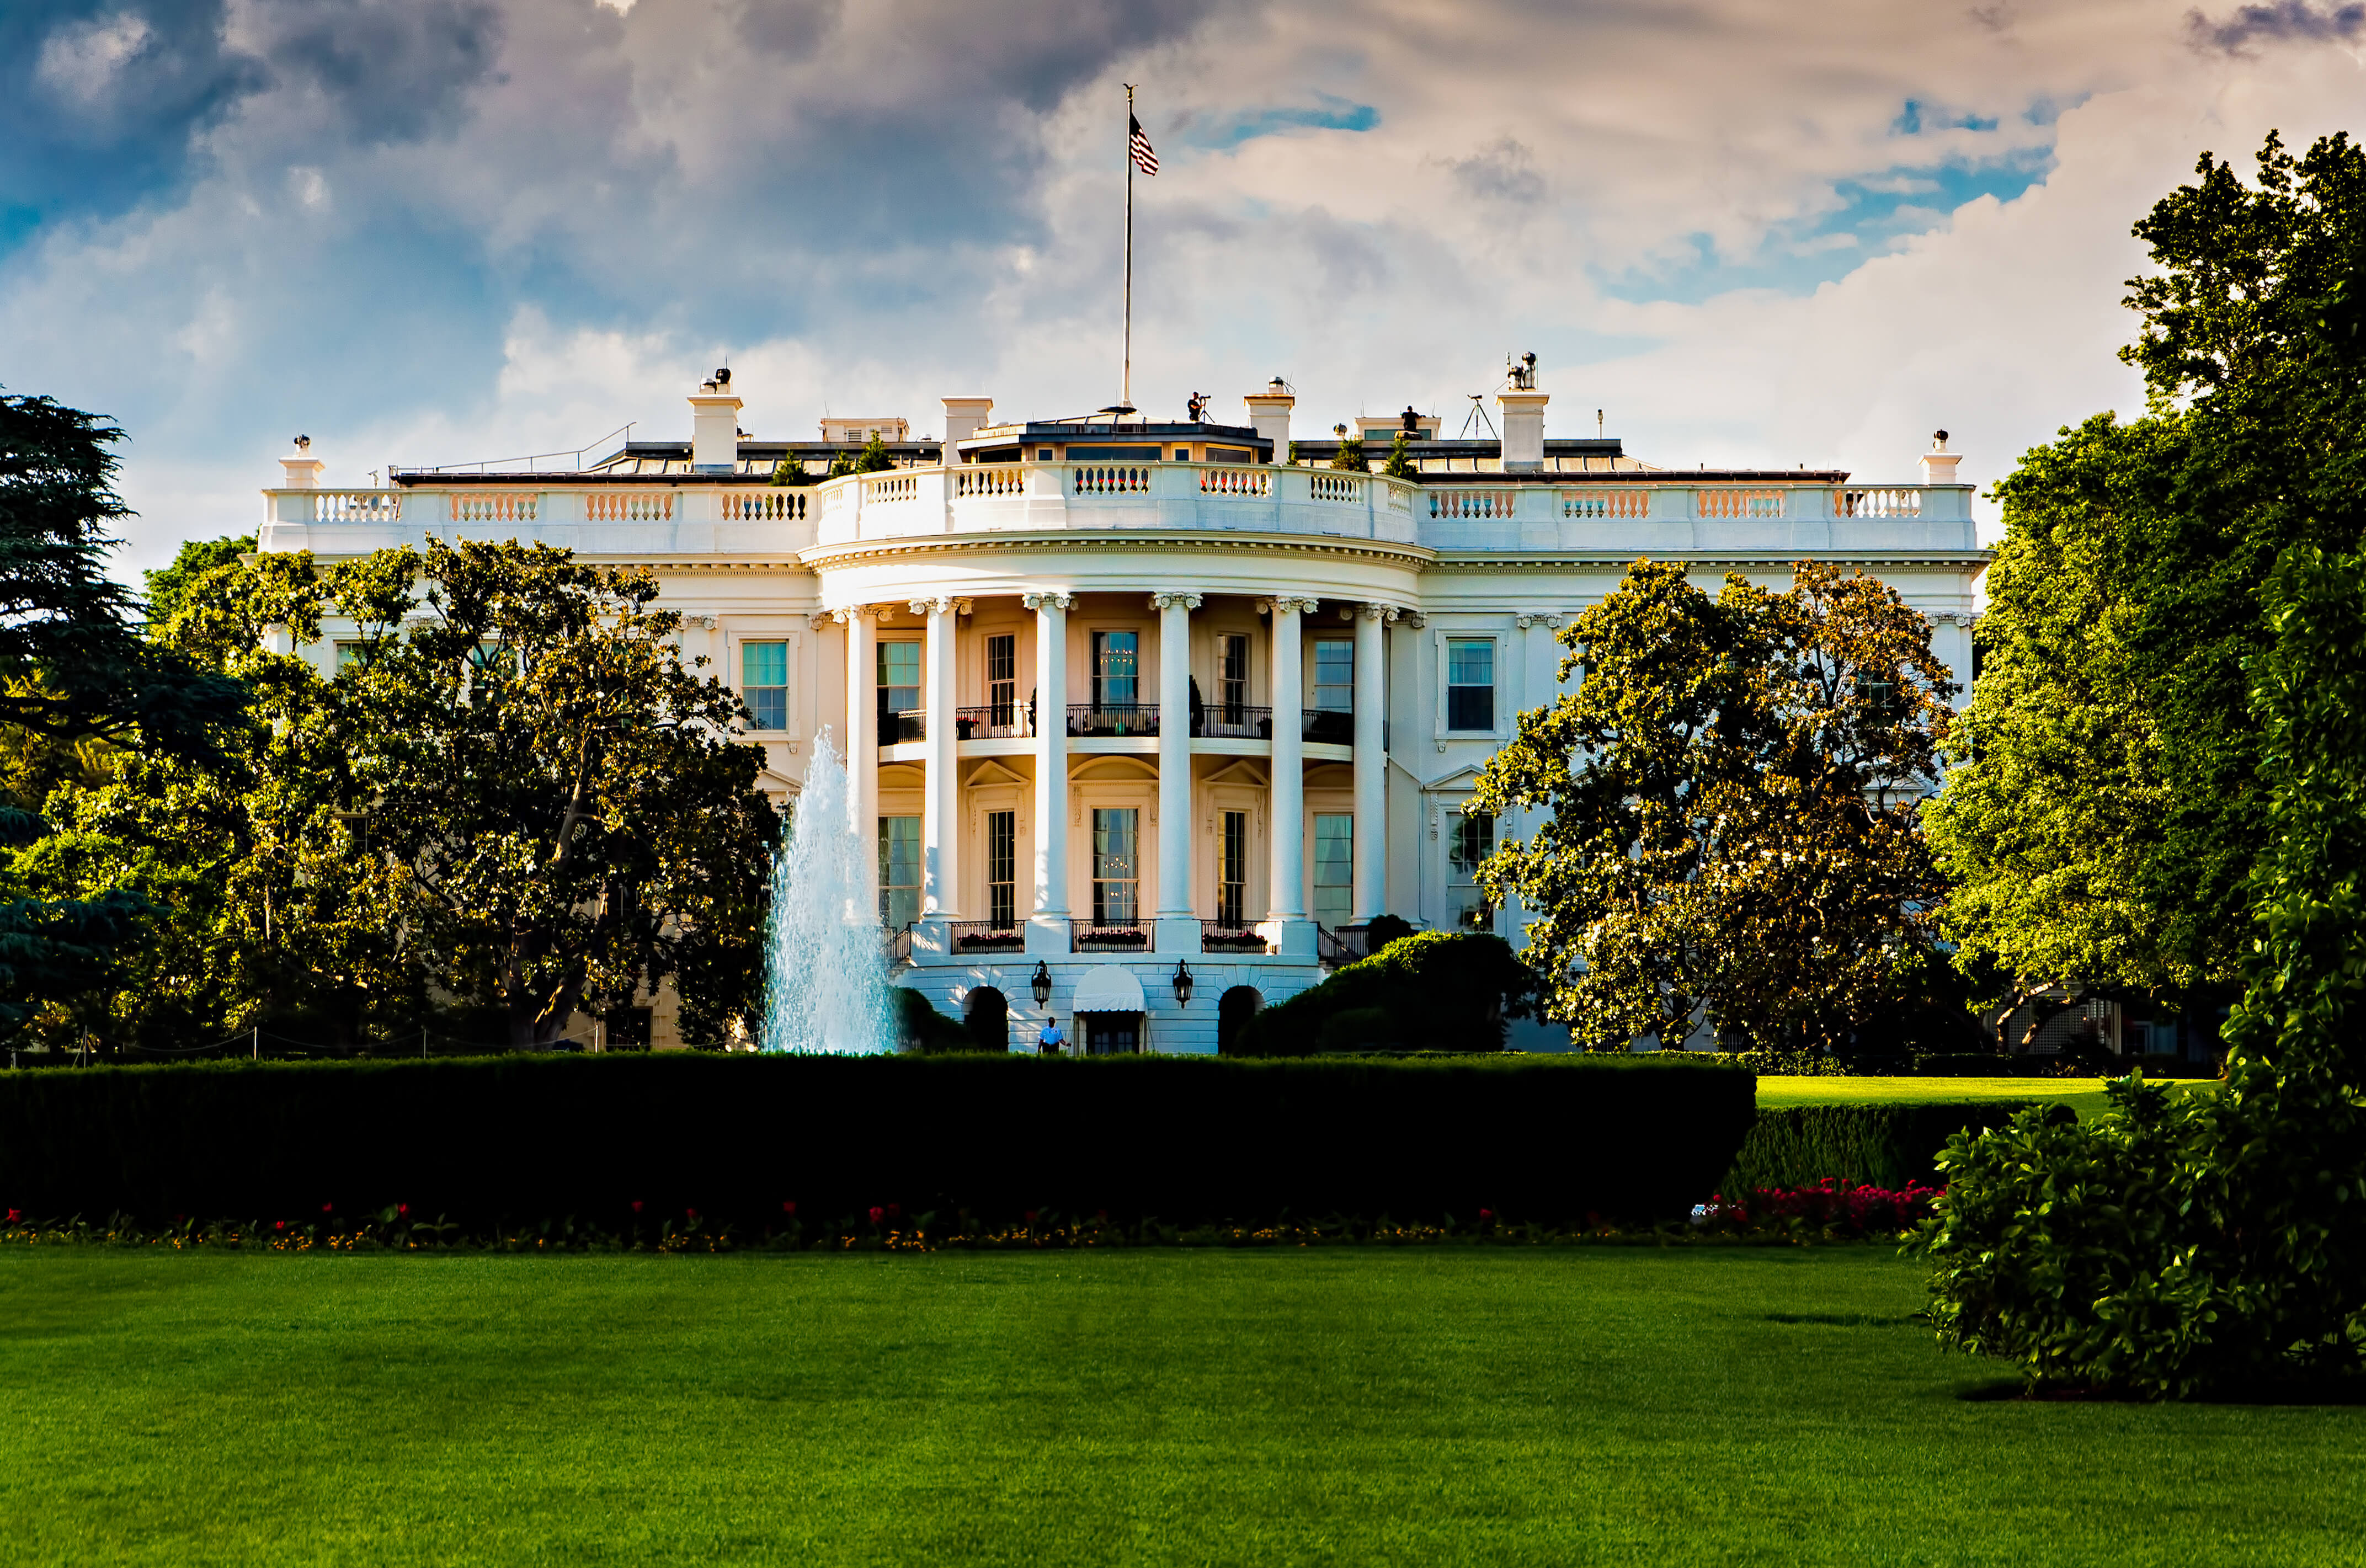 image of the white house against a cloudy sky